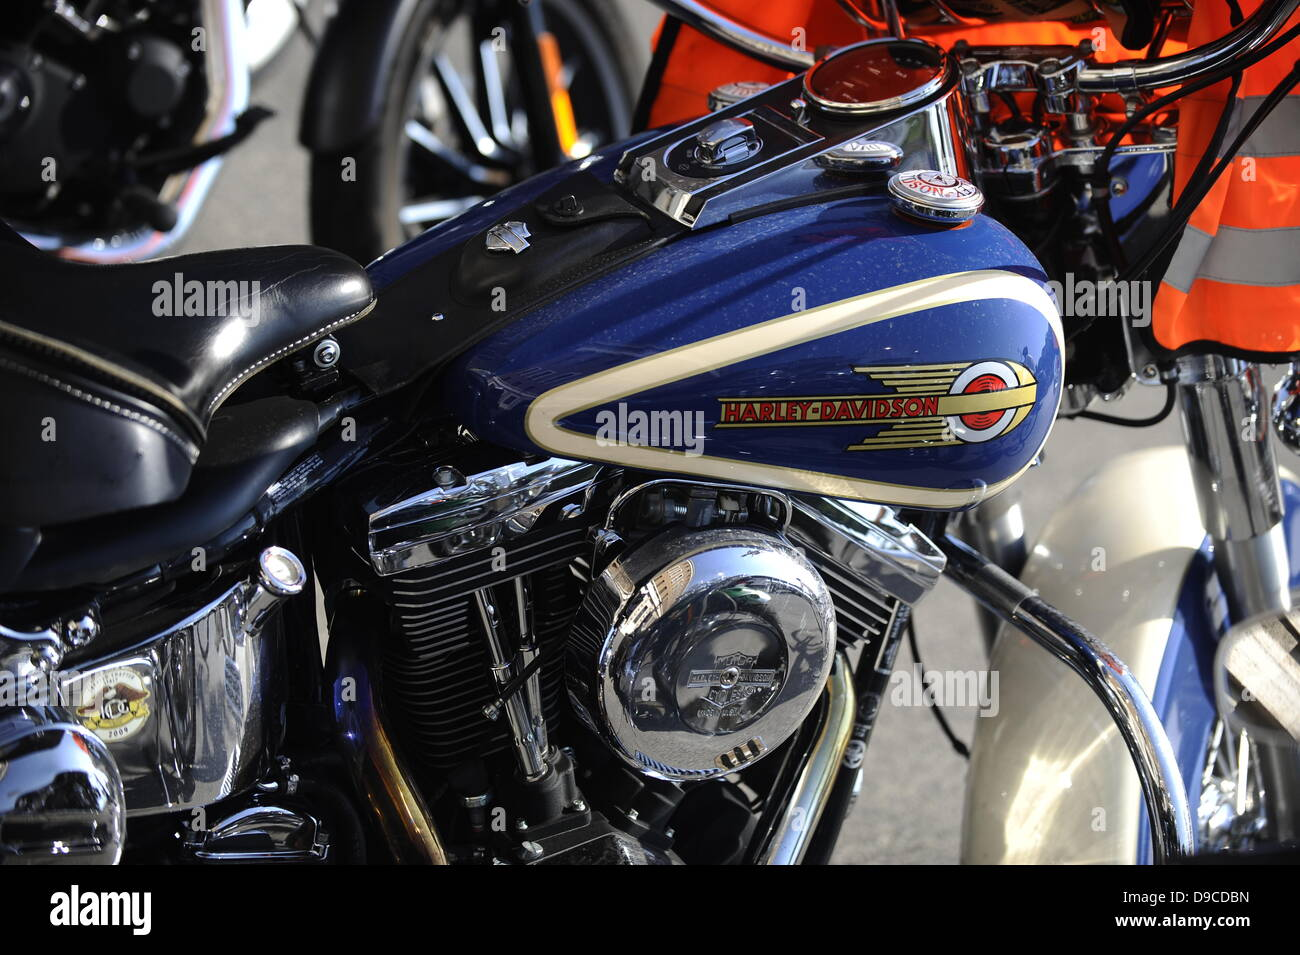 Harley Davidson Stock: Harley Davidson Motorcycle Gas Tank Stock Photos & Harley